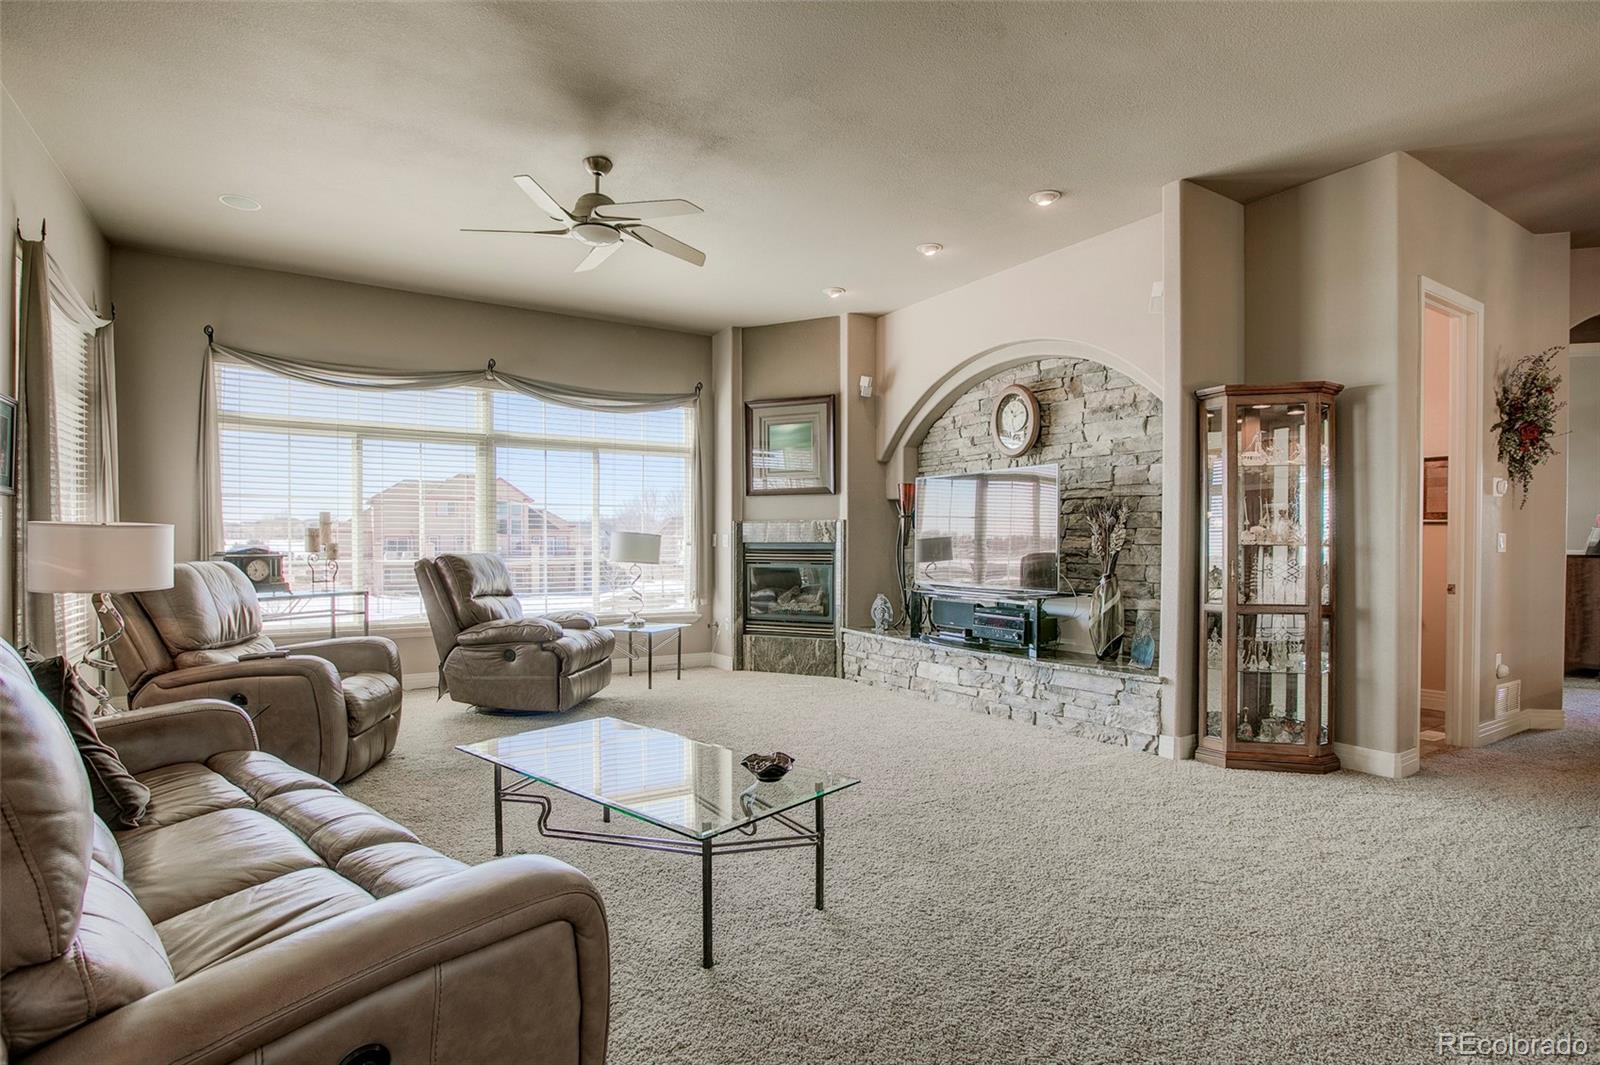 MLS# 7126152 - 8 - 5816 W Conservation Drive, Frederick, CO 80504